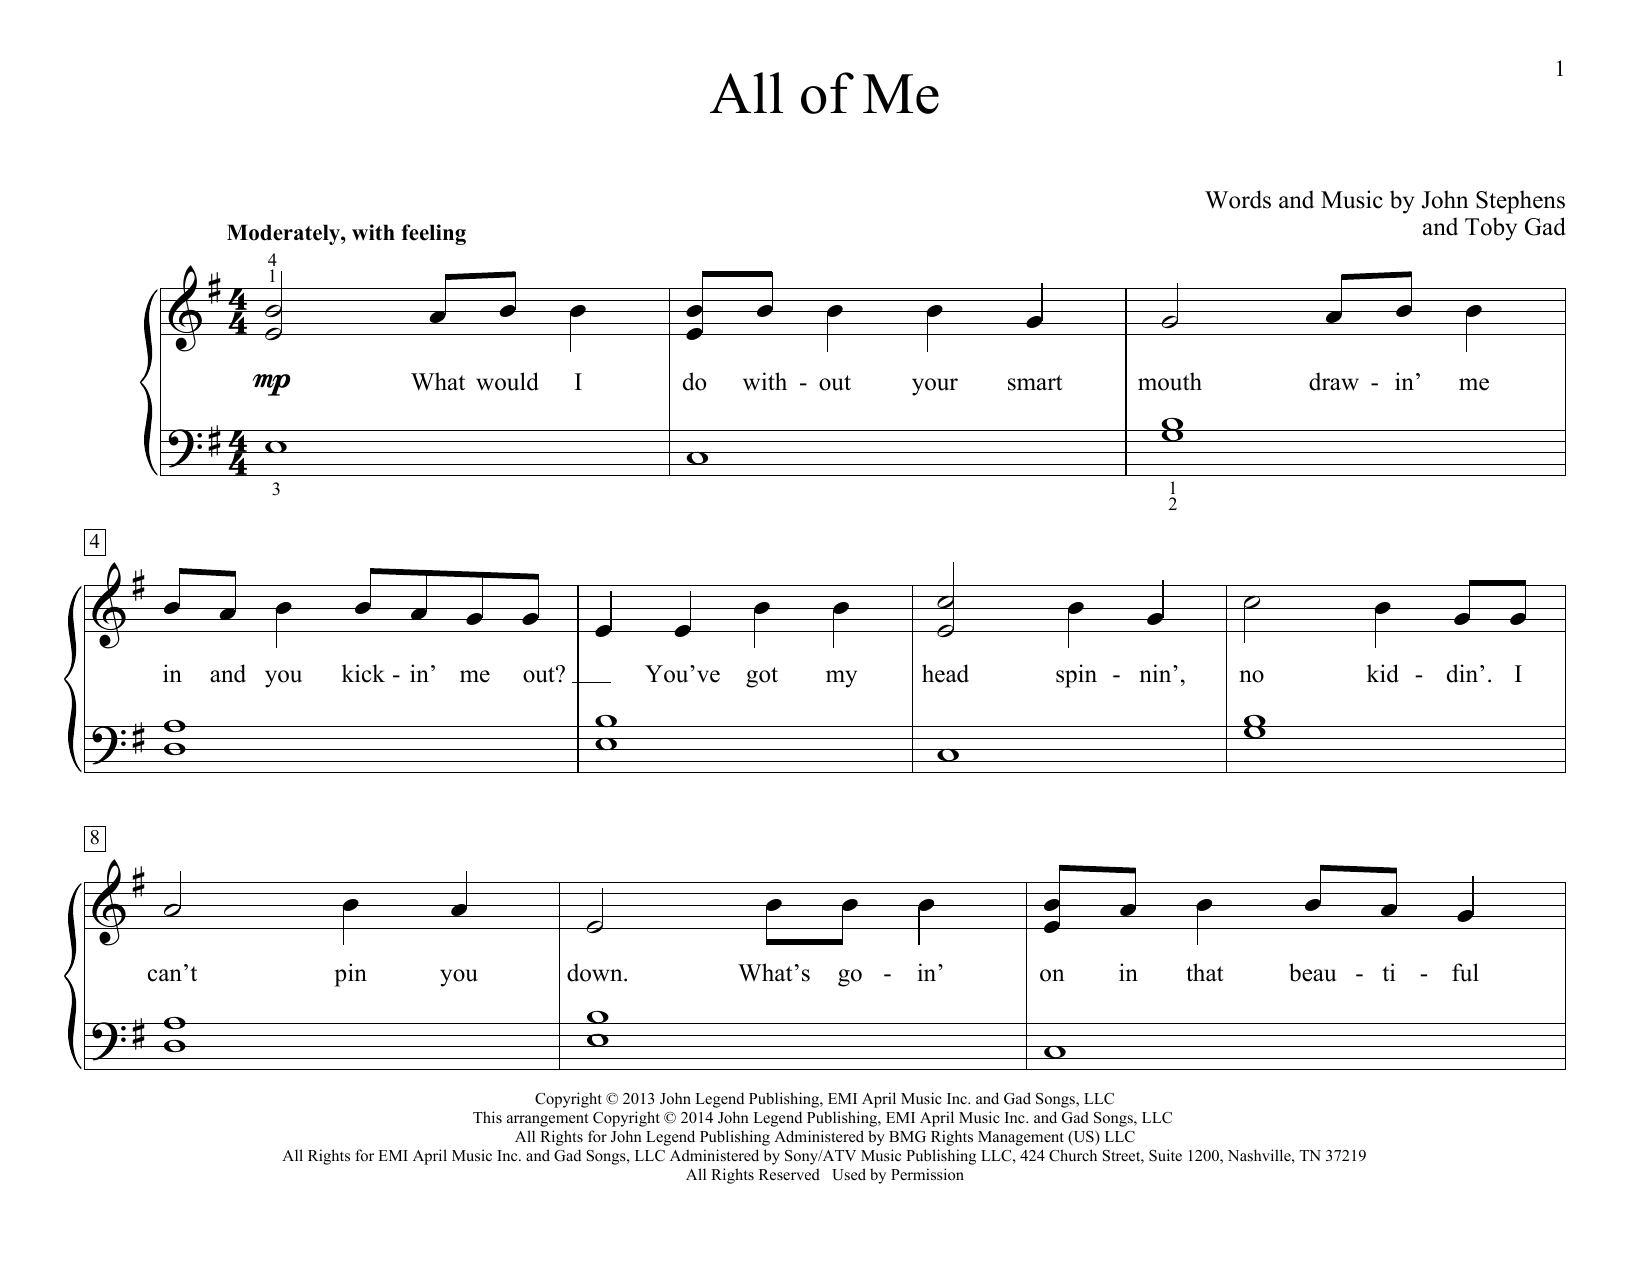 All of me sheet music direct sheet preview all of me hexwebz Gallery